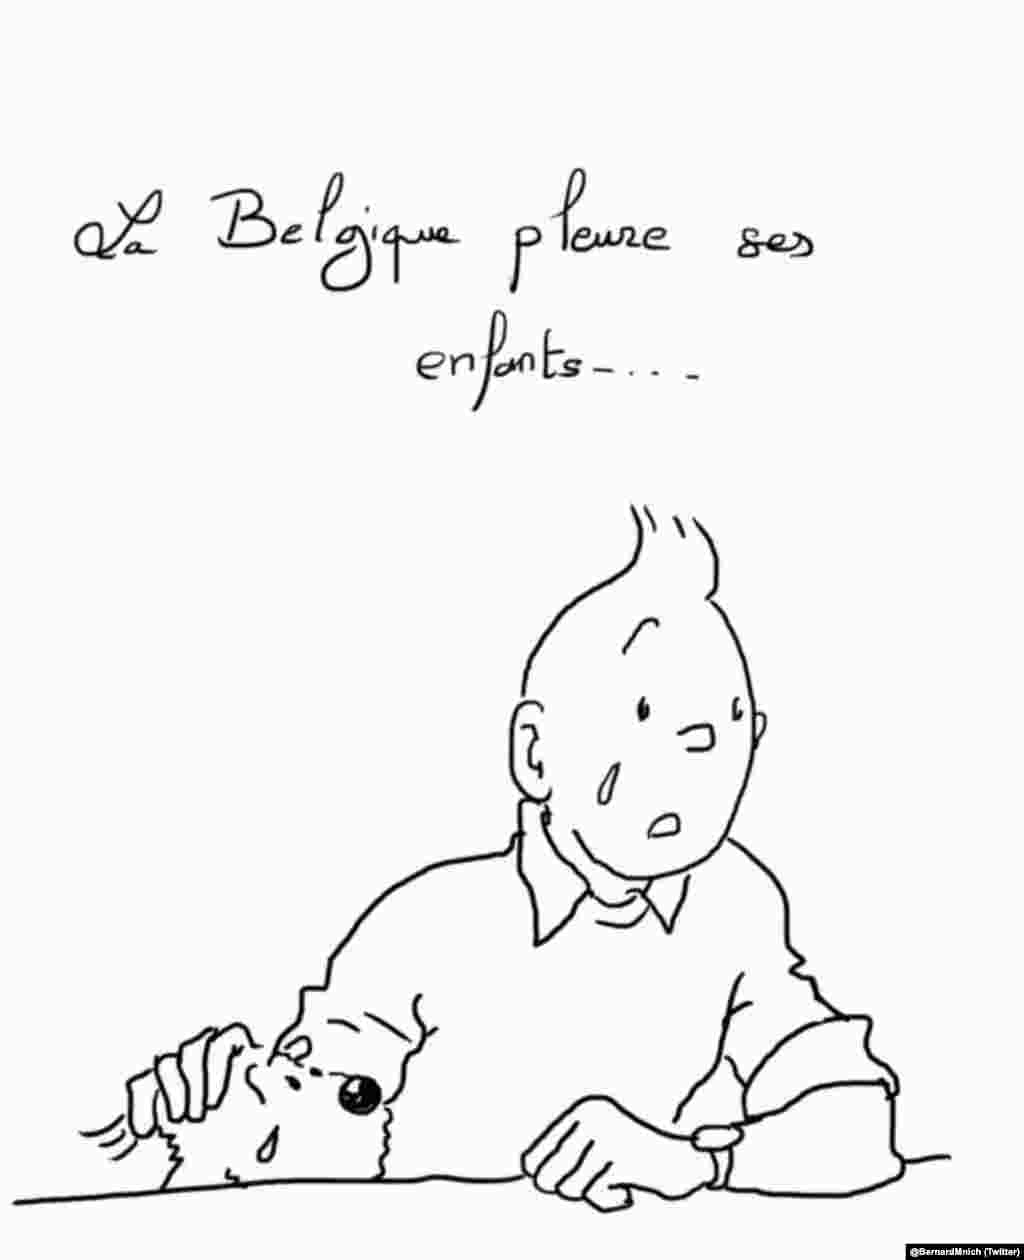 This cartoon showing Tintin and his dog Snowy in tears was also widely shared on social networks. Translation of French text: Belgium weeps for its children. (Social-media generated content, via @BernardMnich)